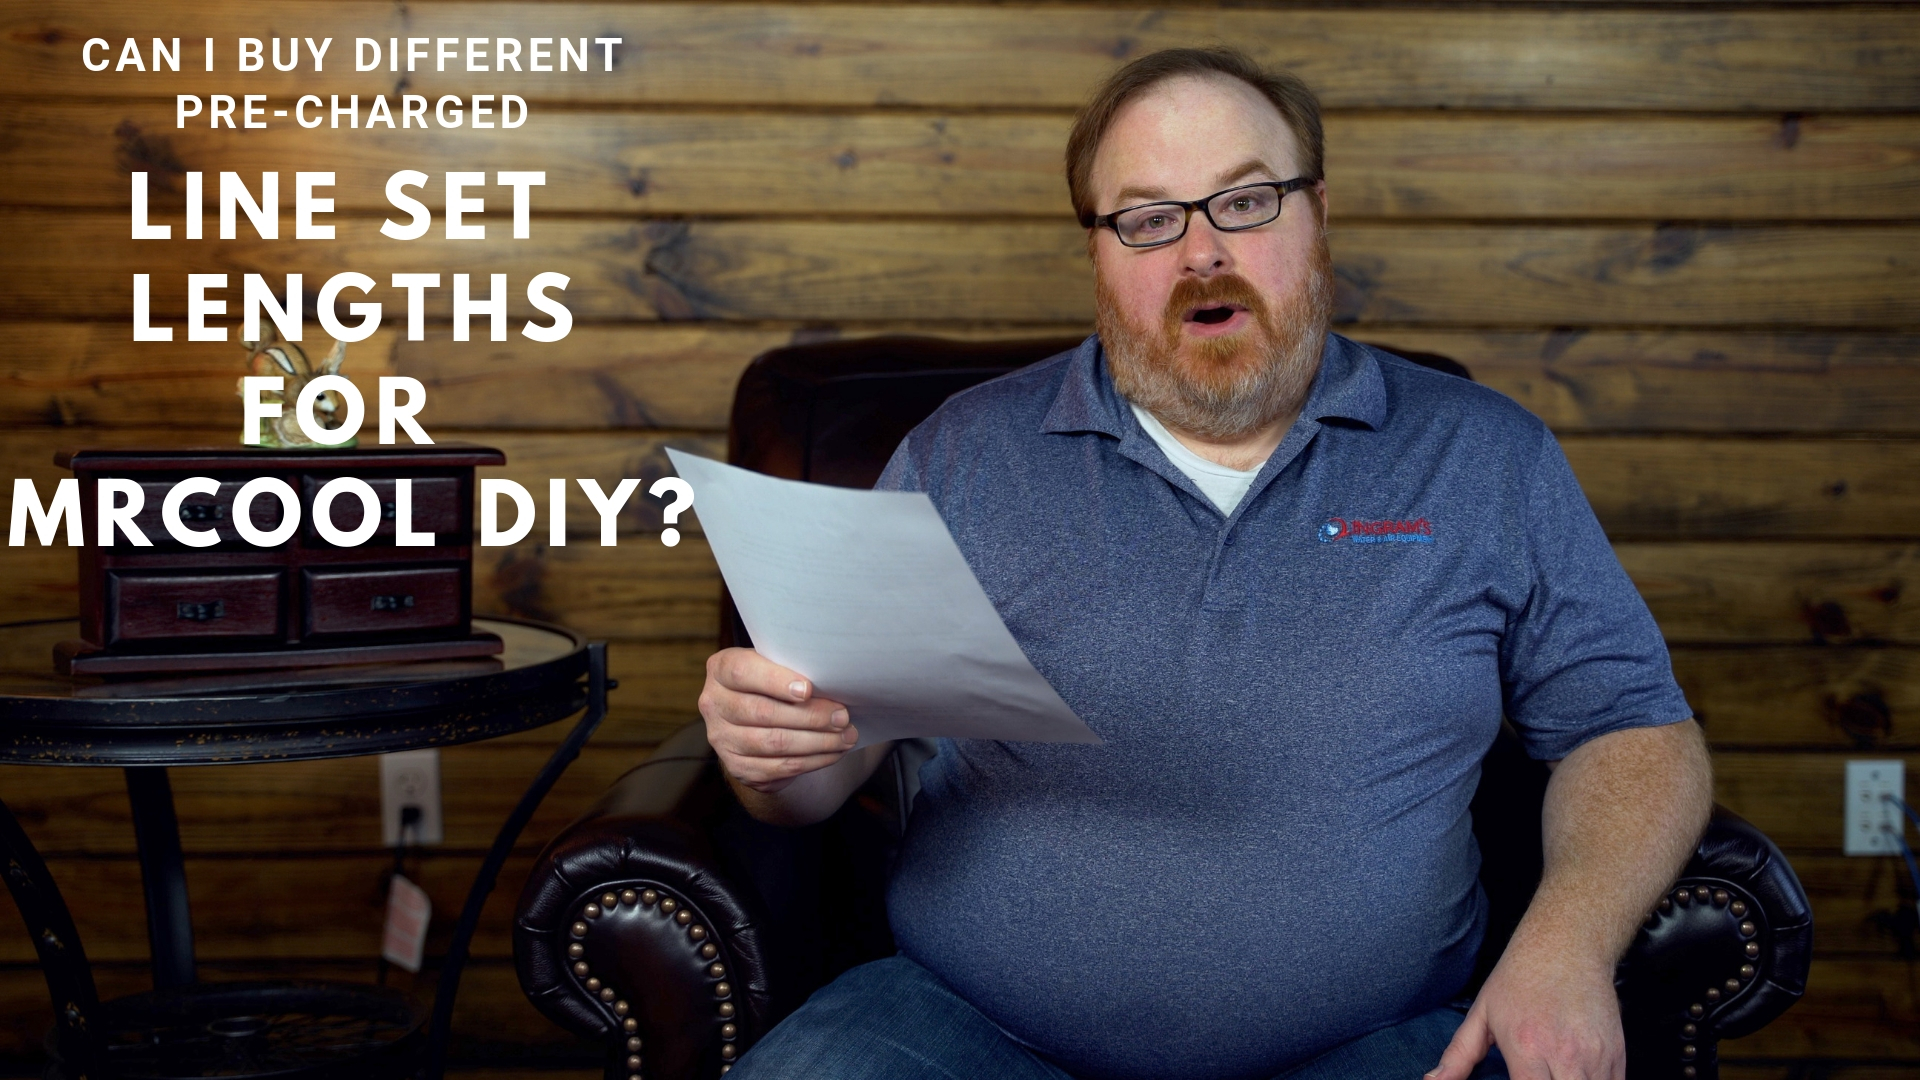 Can I Buy Different Pre-Charged Line Set Lengths for the MRCOOL DIY? - Ask  the Expert Episode 149